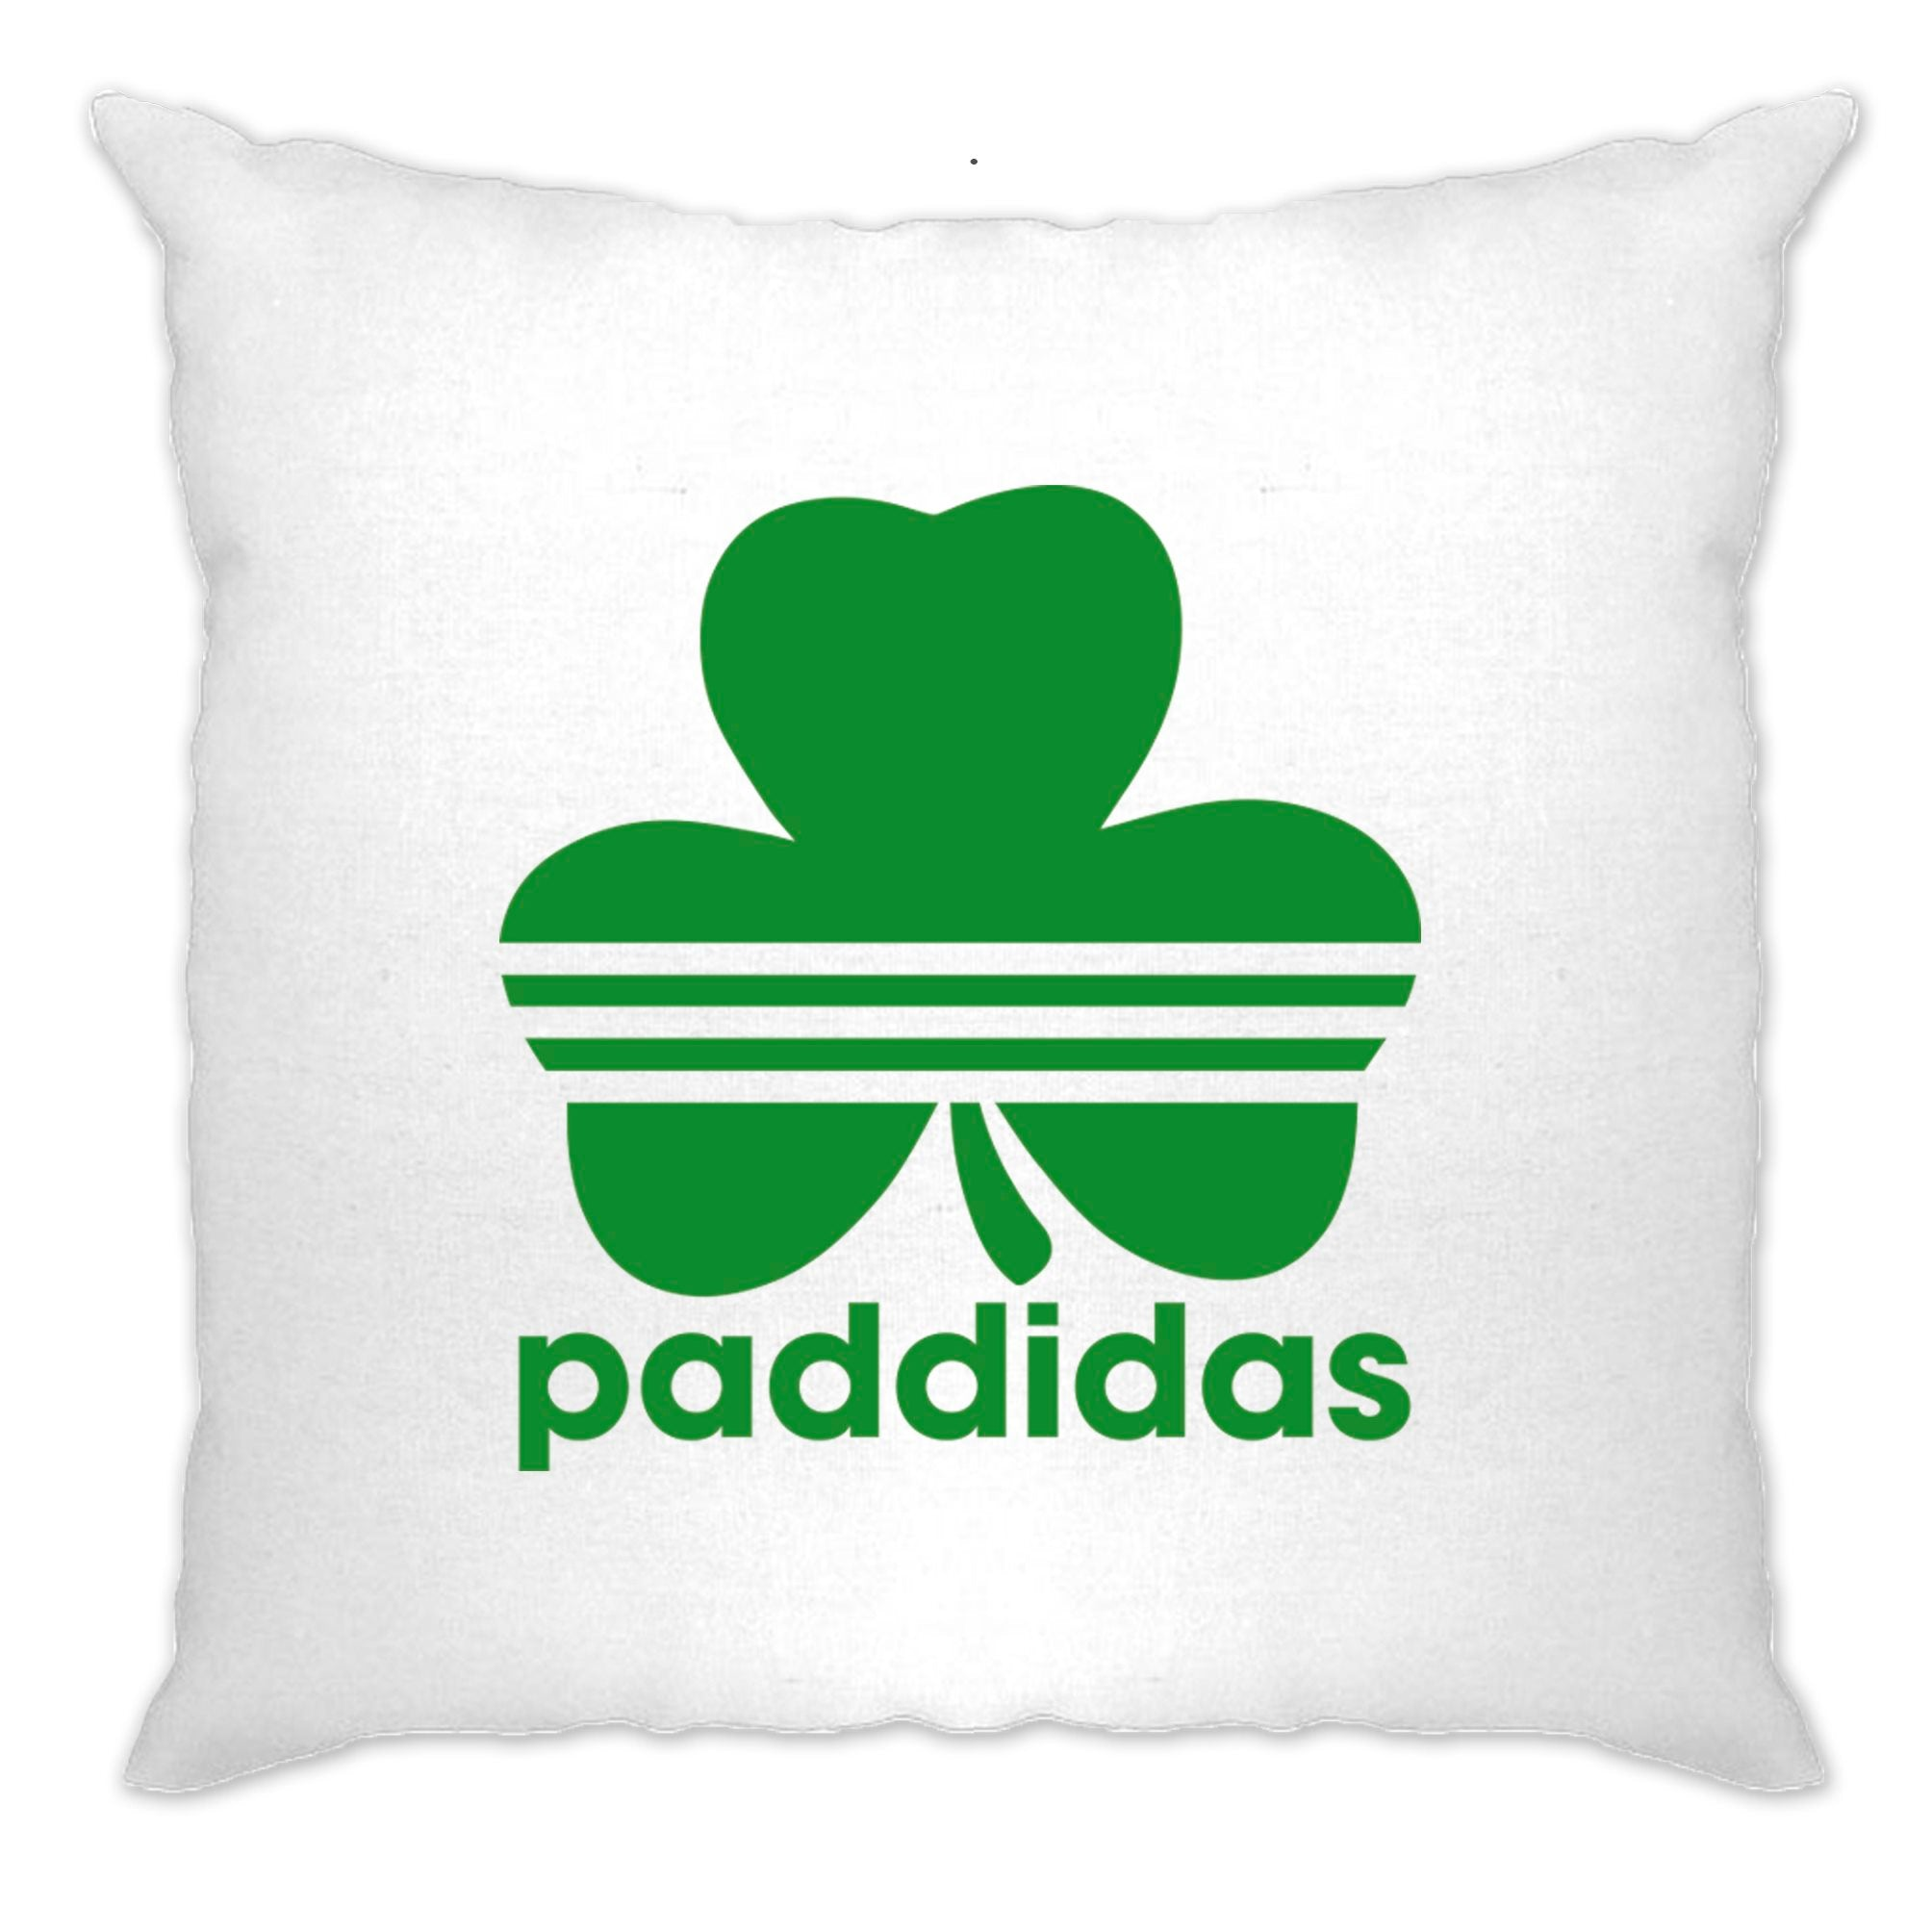 St Patricks Day Cushion Cover Paddidas Paddy Irish Sport